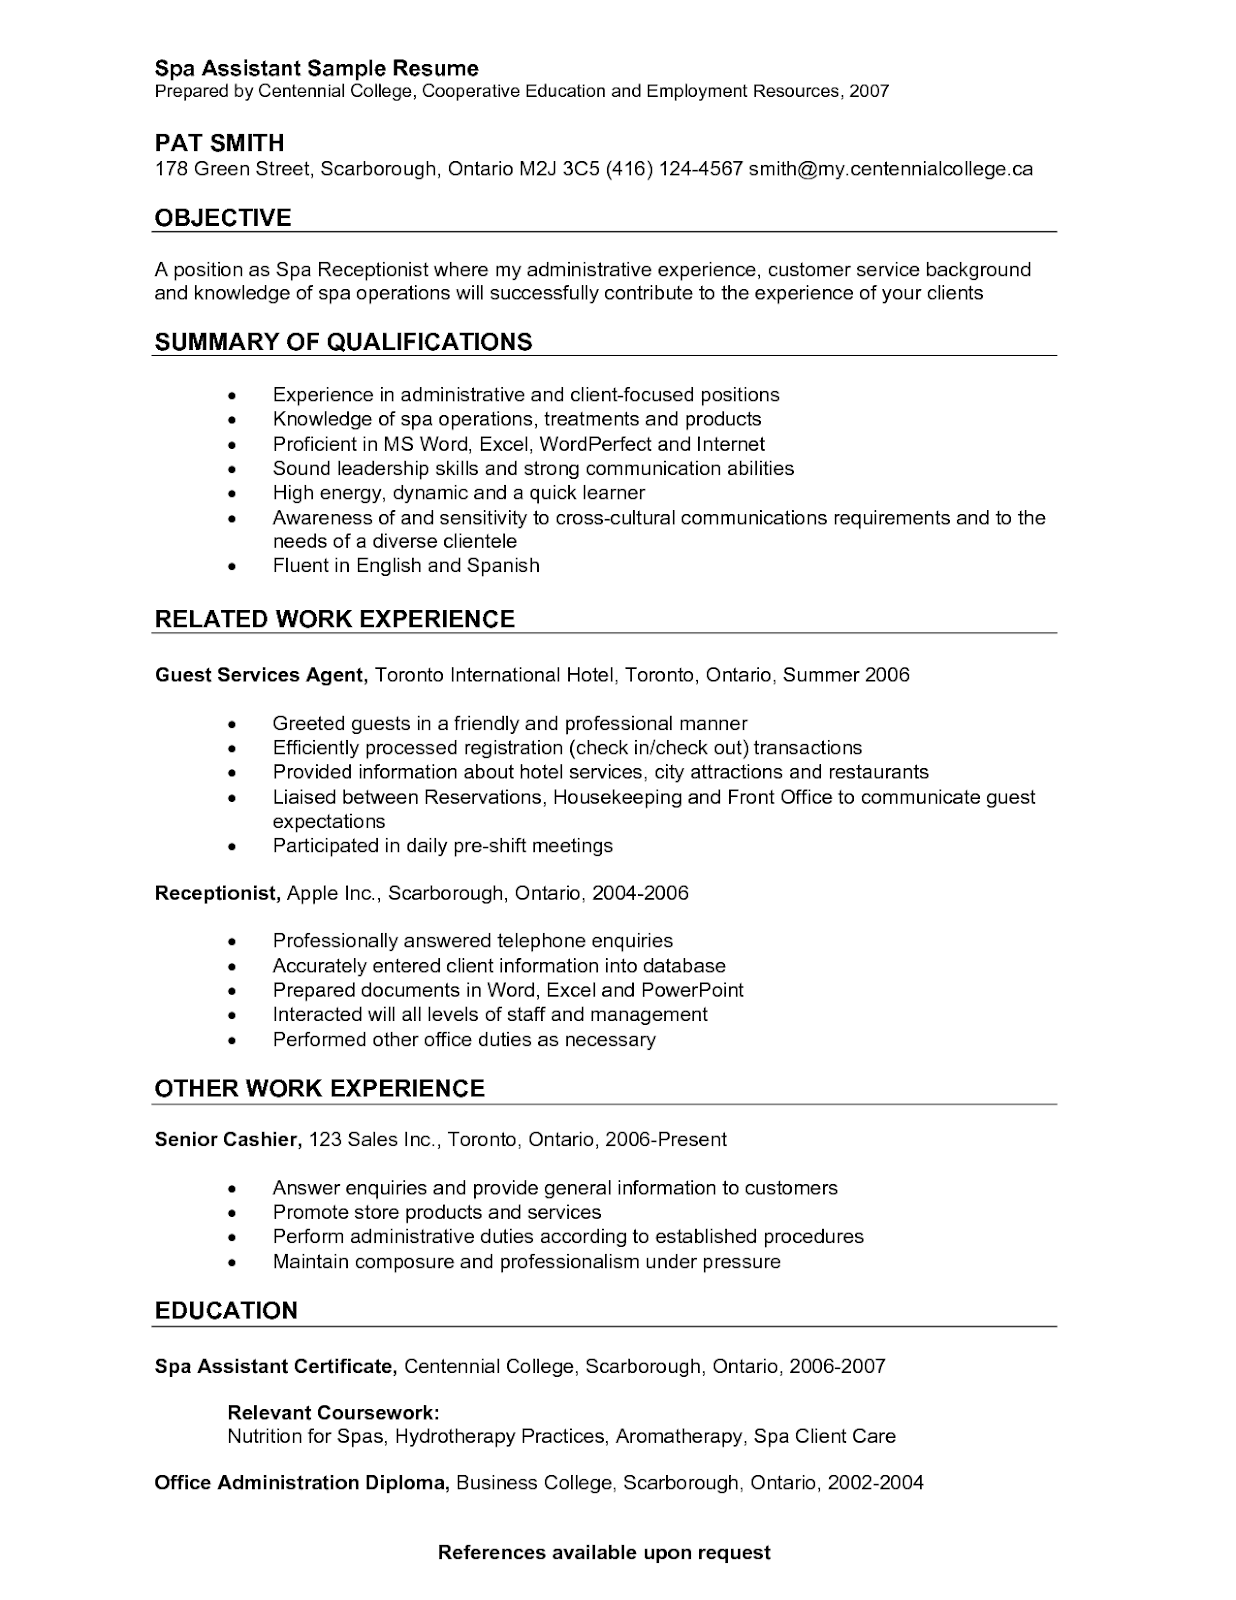 Personal Assistant Resume Samples, Personal Assistant Resume Samples, personal assistant resume sample, nanny personal assistant resume sample, celebrity personal assistant resume sample, personal assistant resume sample australia, personal assistant resume examples